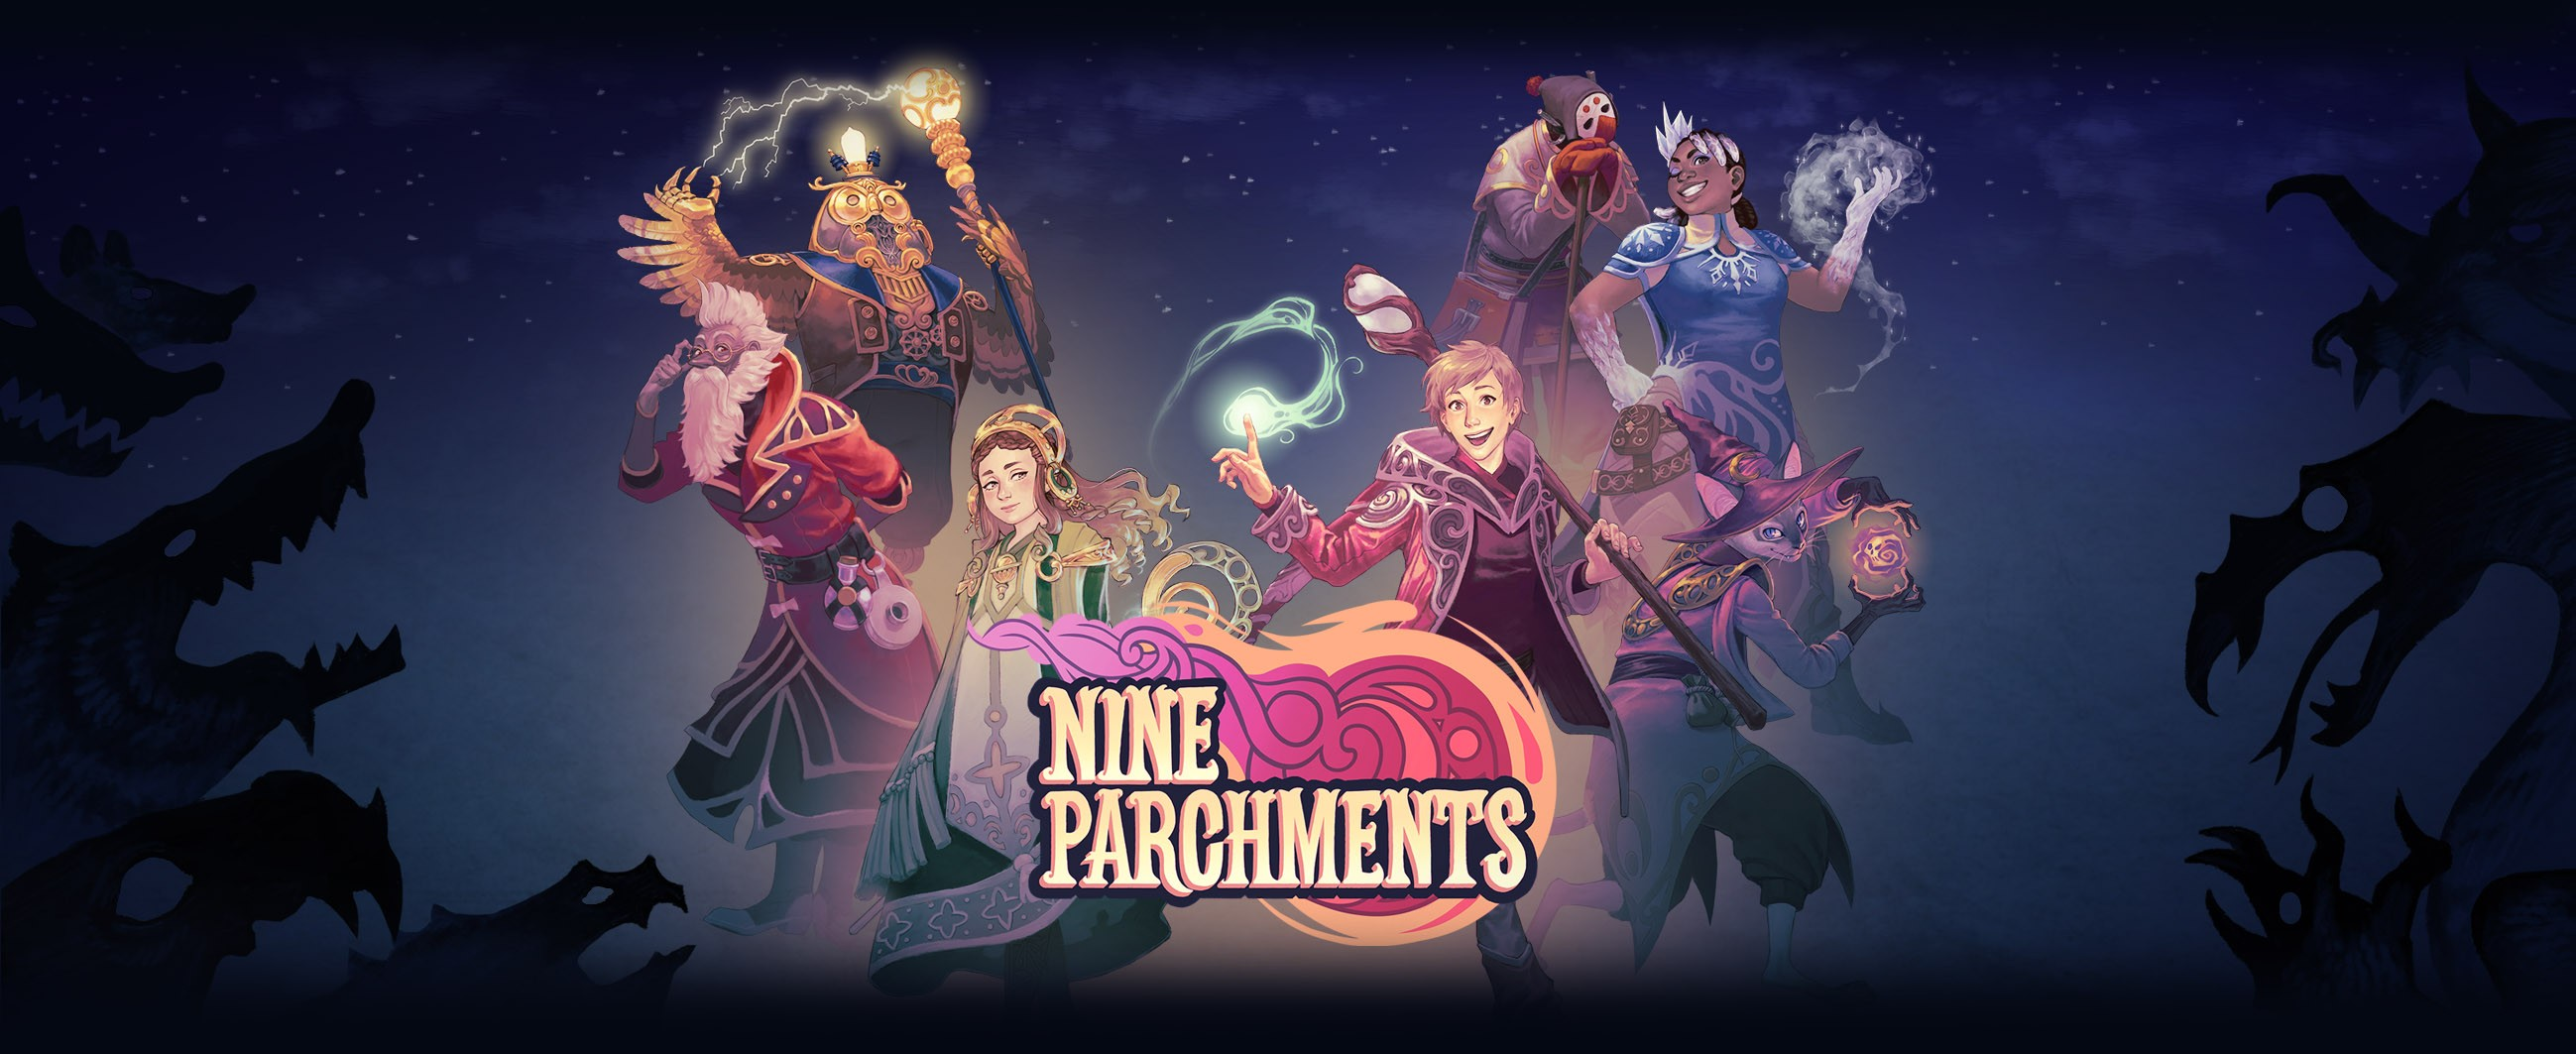 Nine Parchments 九张羊皮纸